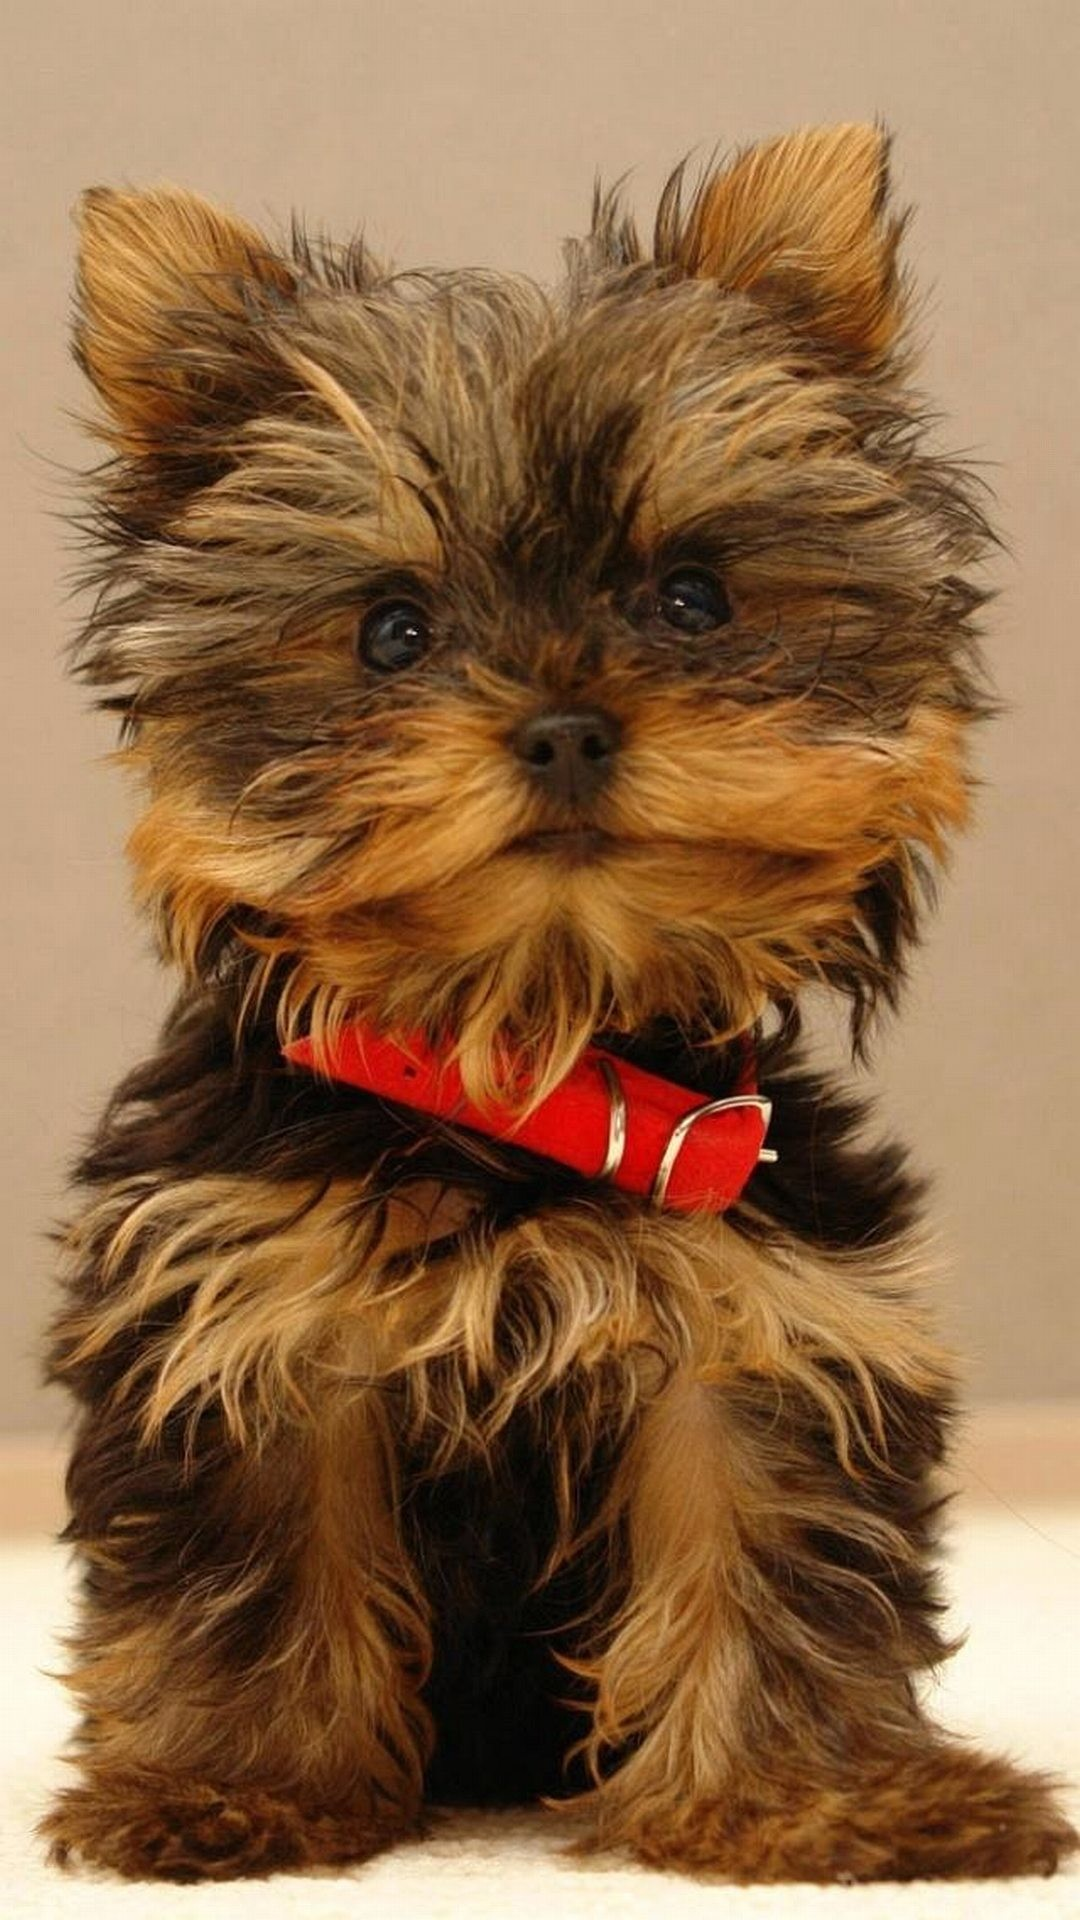 1080x1920 Yorkshire Terrier Cute Puppy Android Wallpaper ...